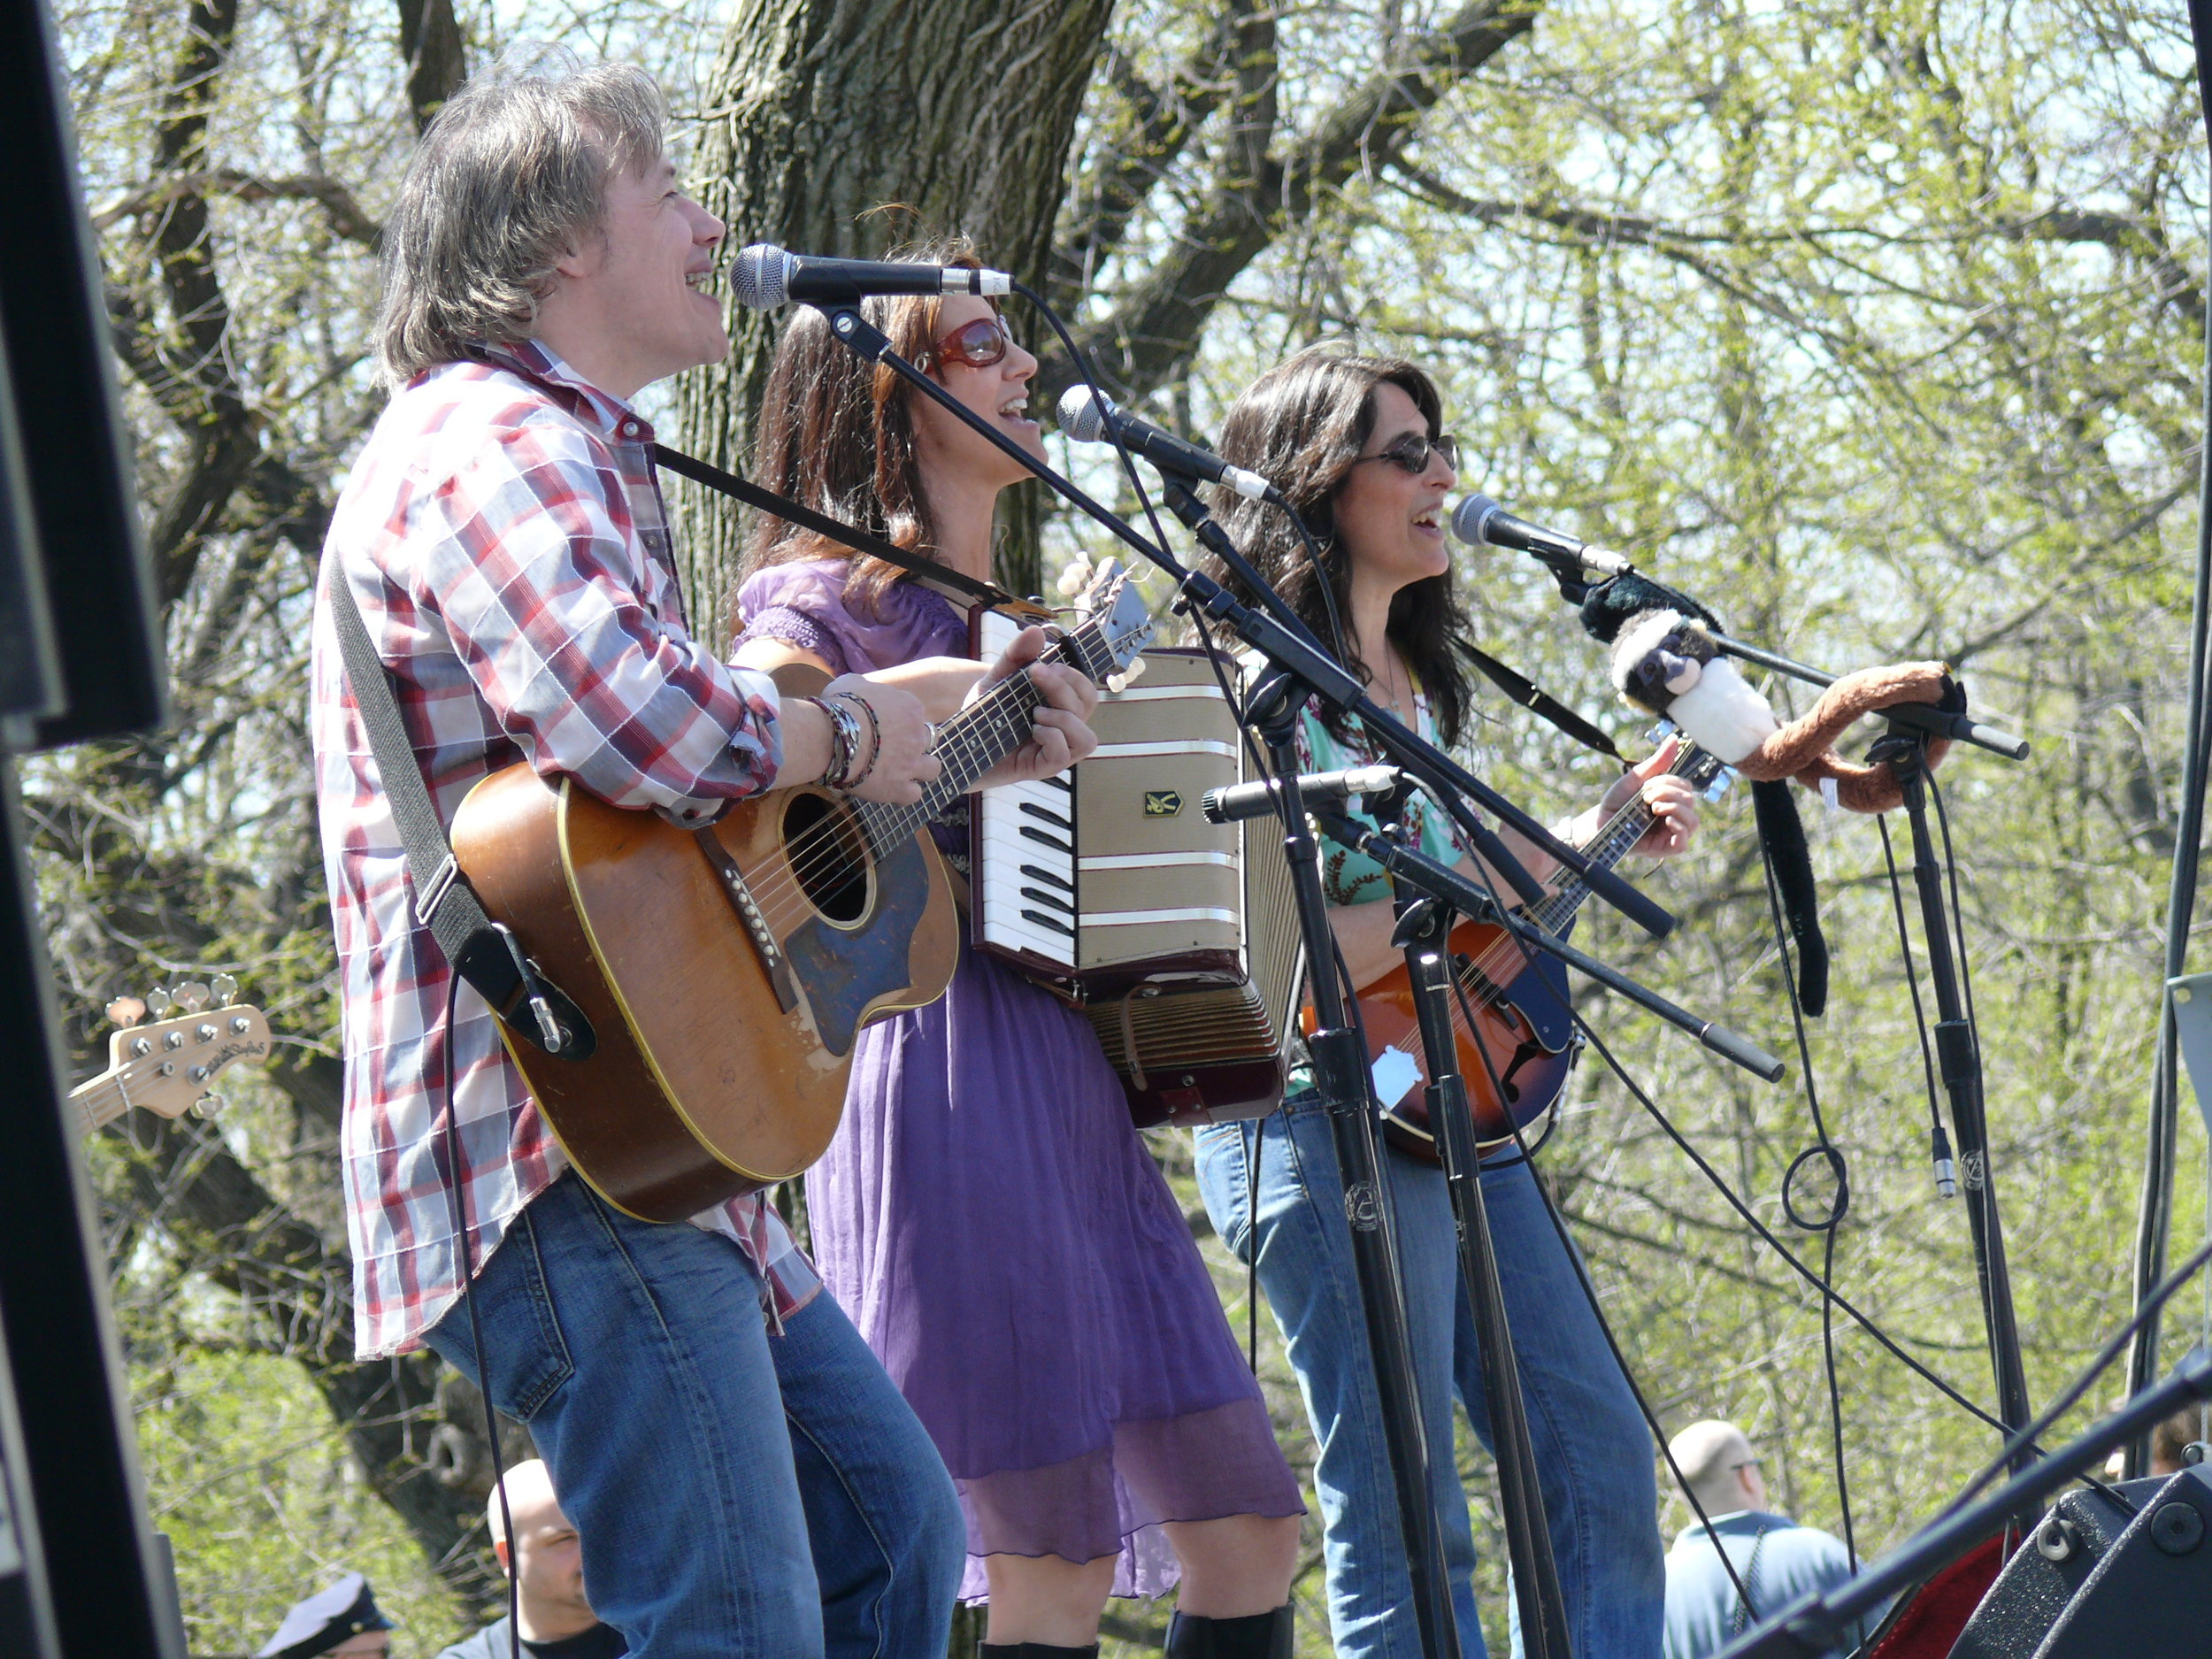 What is your best memory with the Lil' Band? - Opening for Laurie Berkner in Central Park.(Brady, Claudia & Liz in Central Park, 2007!)